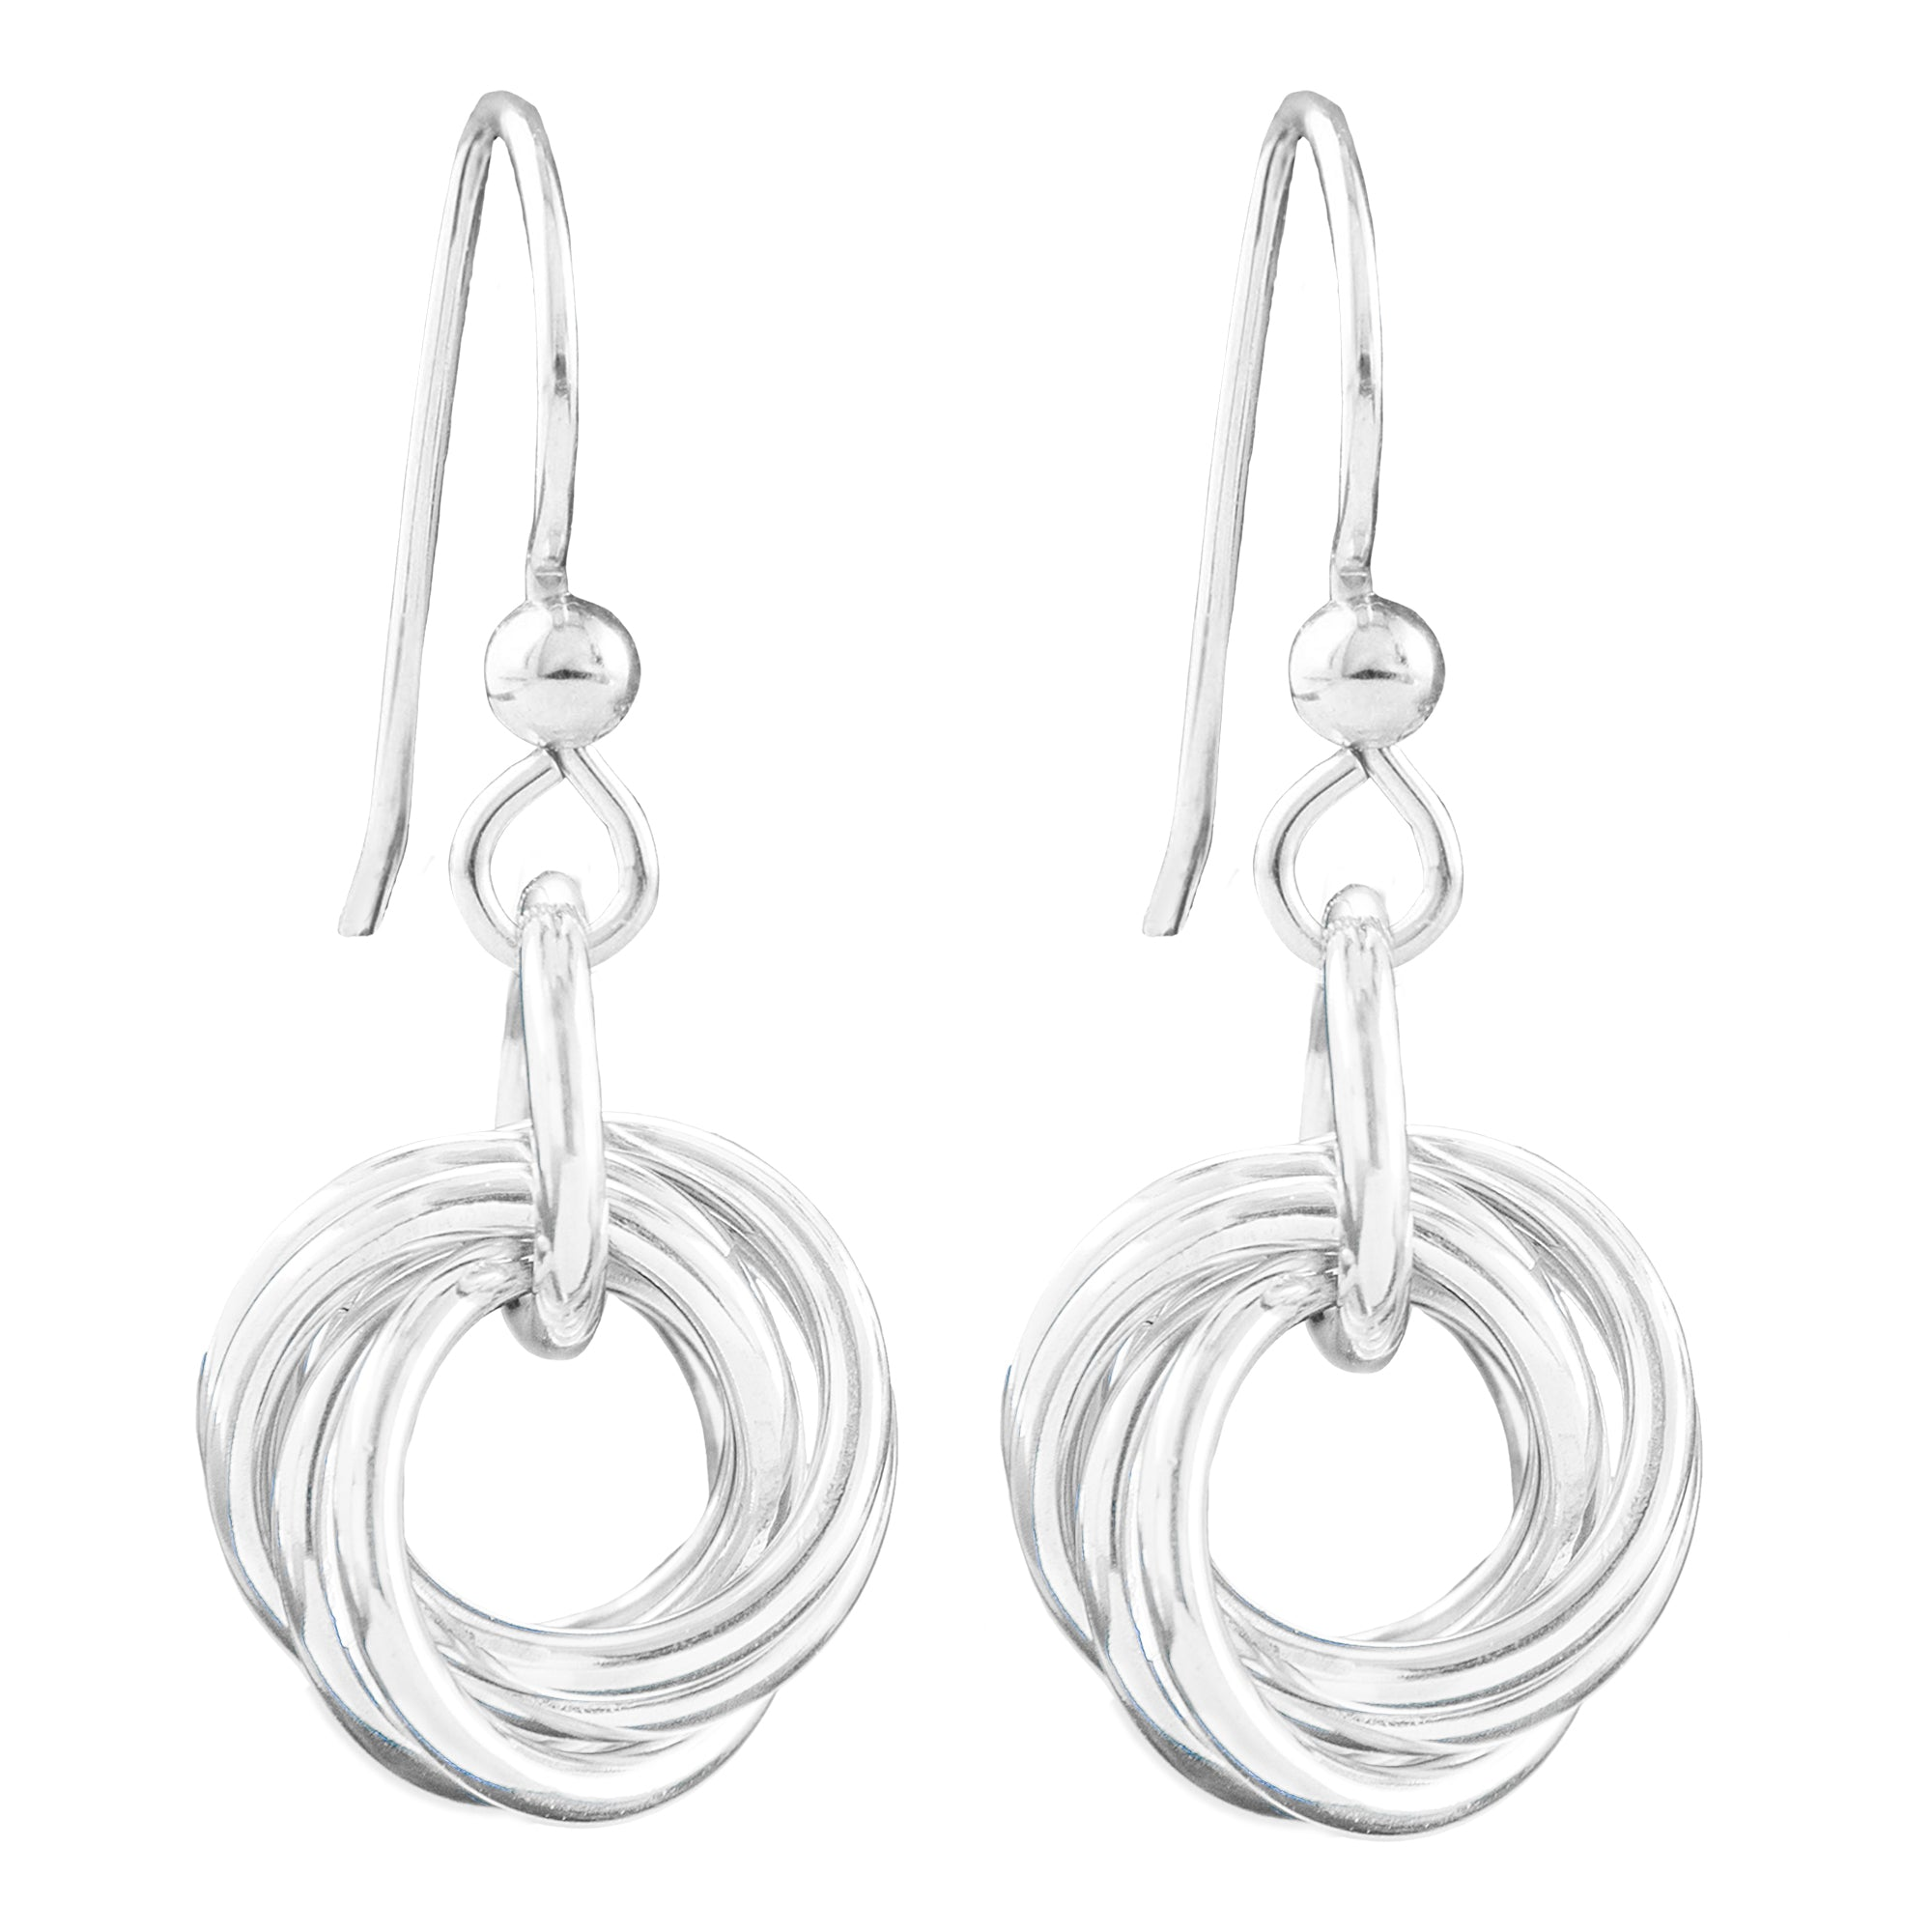 AS SEEN ON LAW AND ORDER: SVU - Dainty Drop Round Love Knot Dangle Earrings in Silver